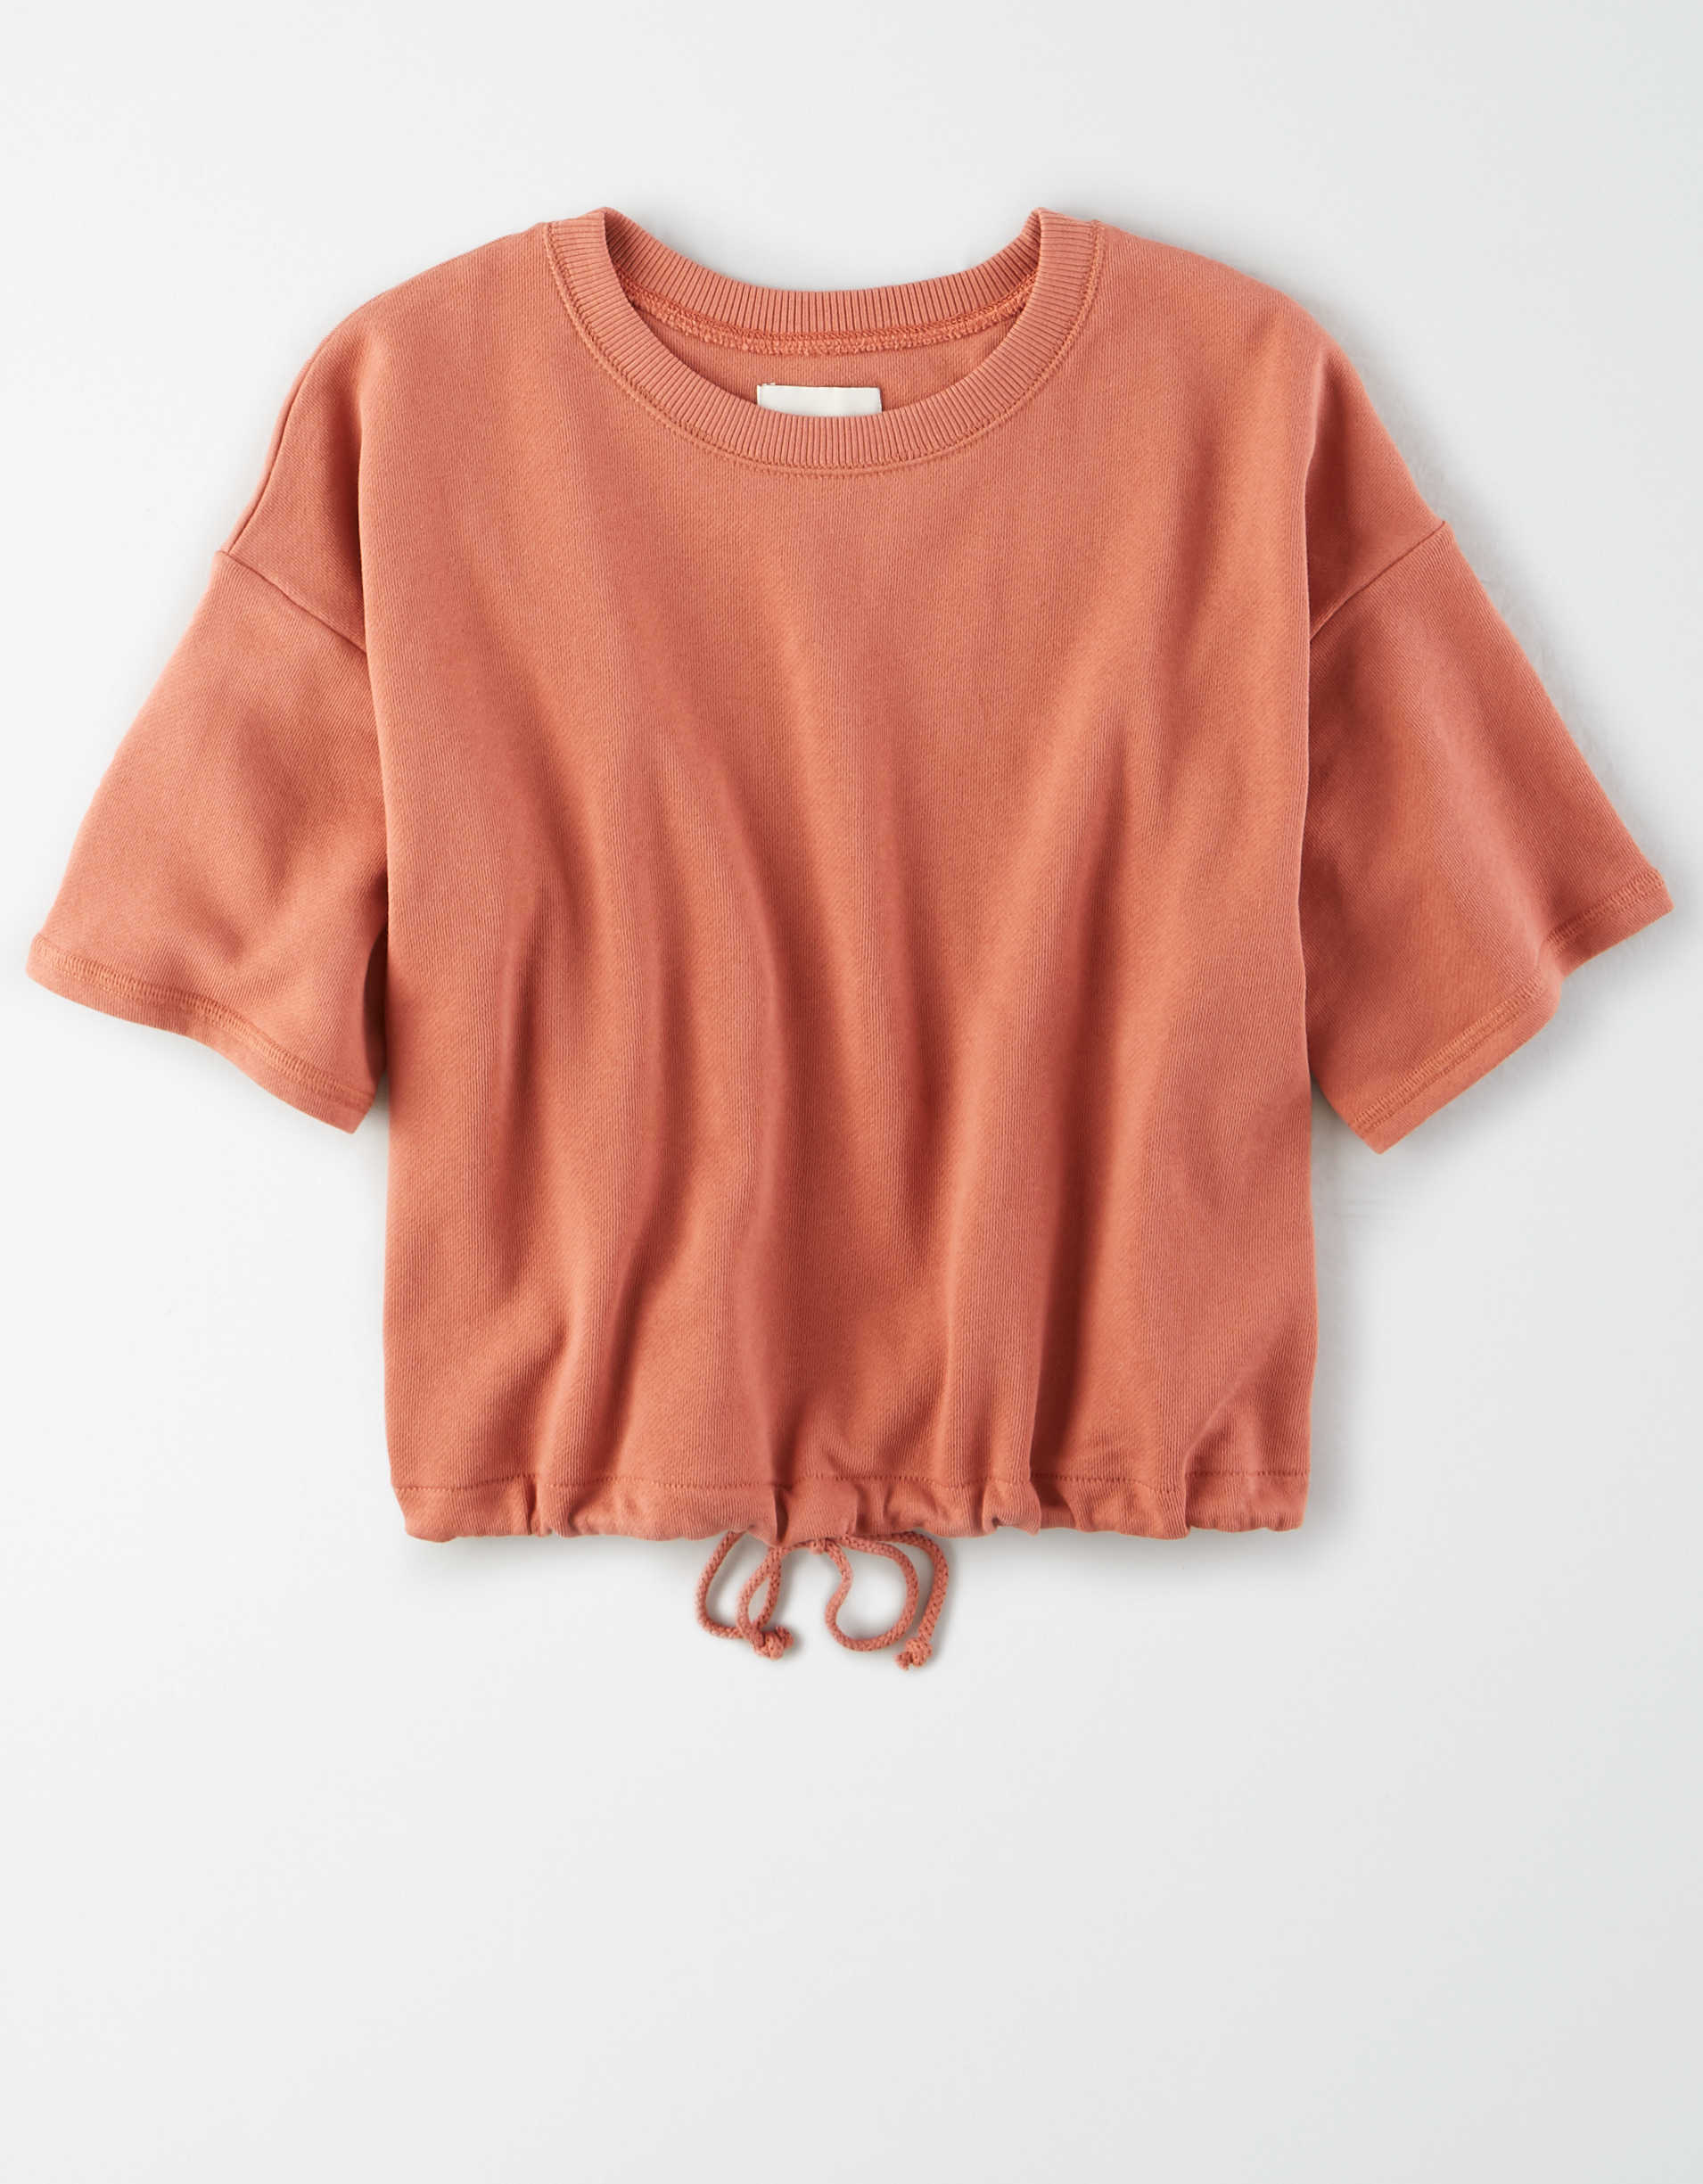 AE Fleece Short Sleeve Cinched Sweatshirt